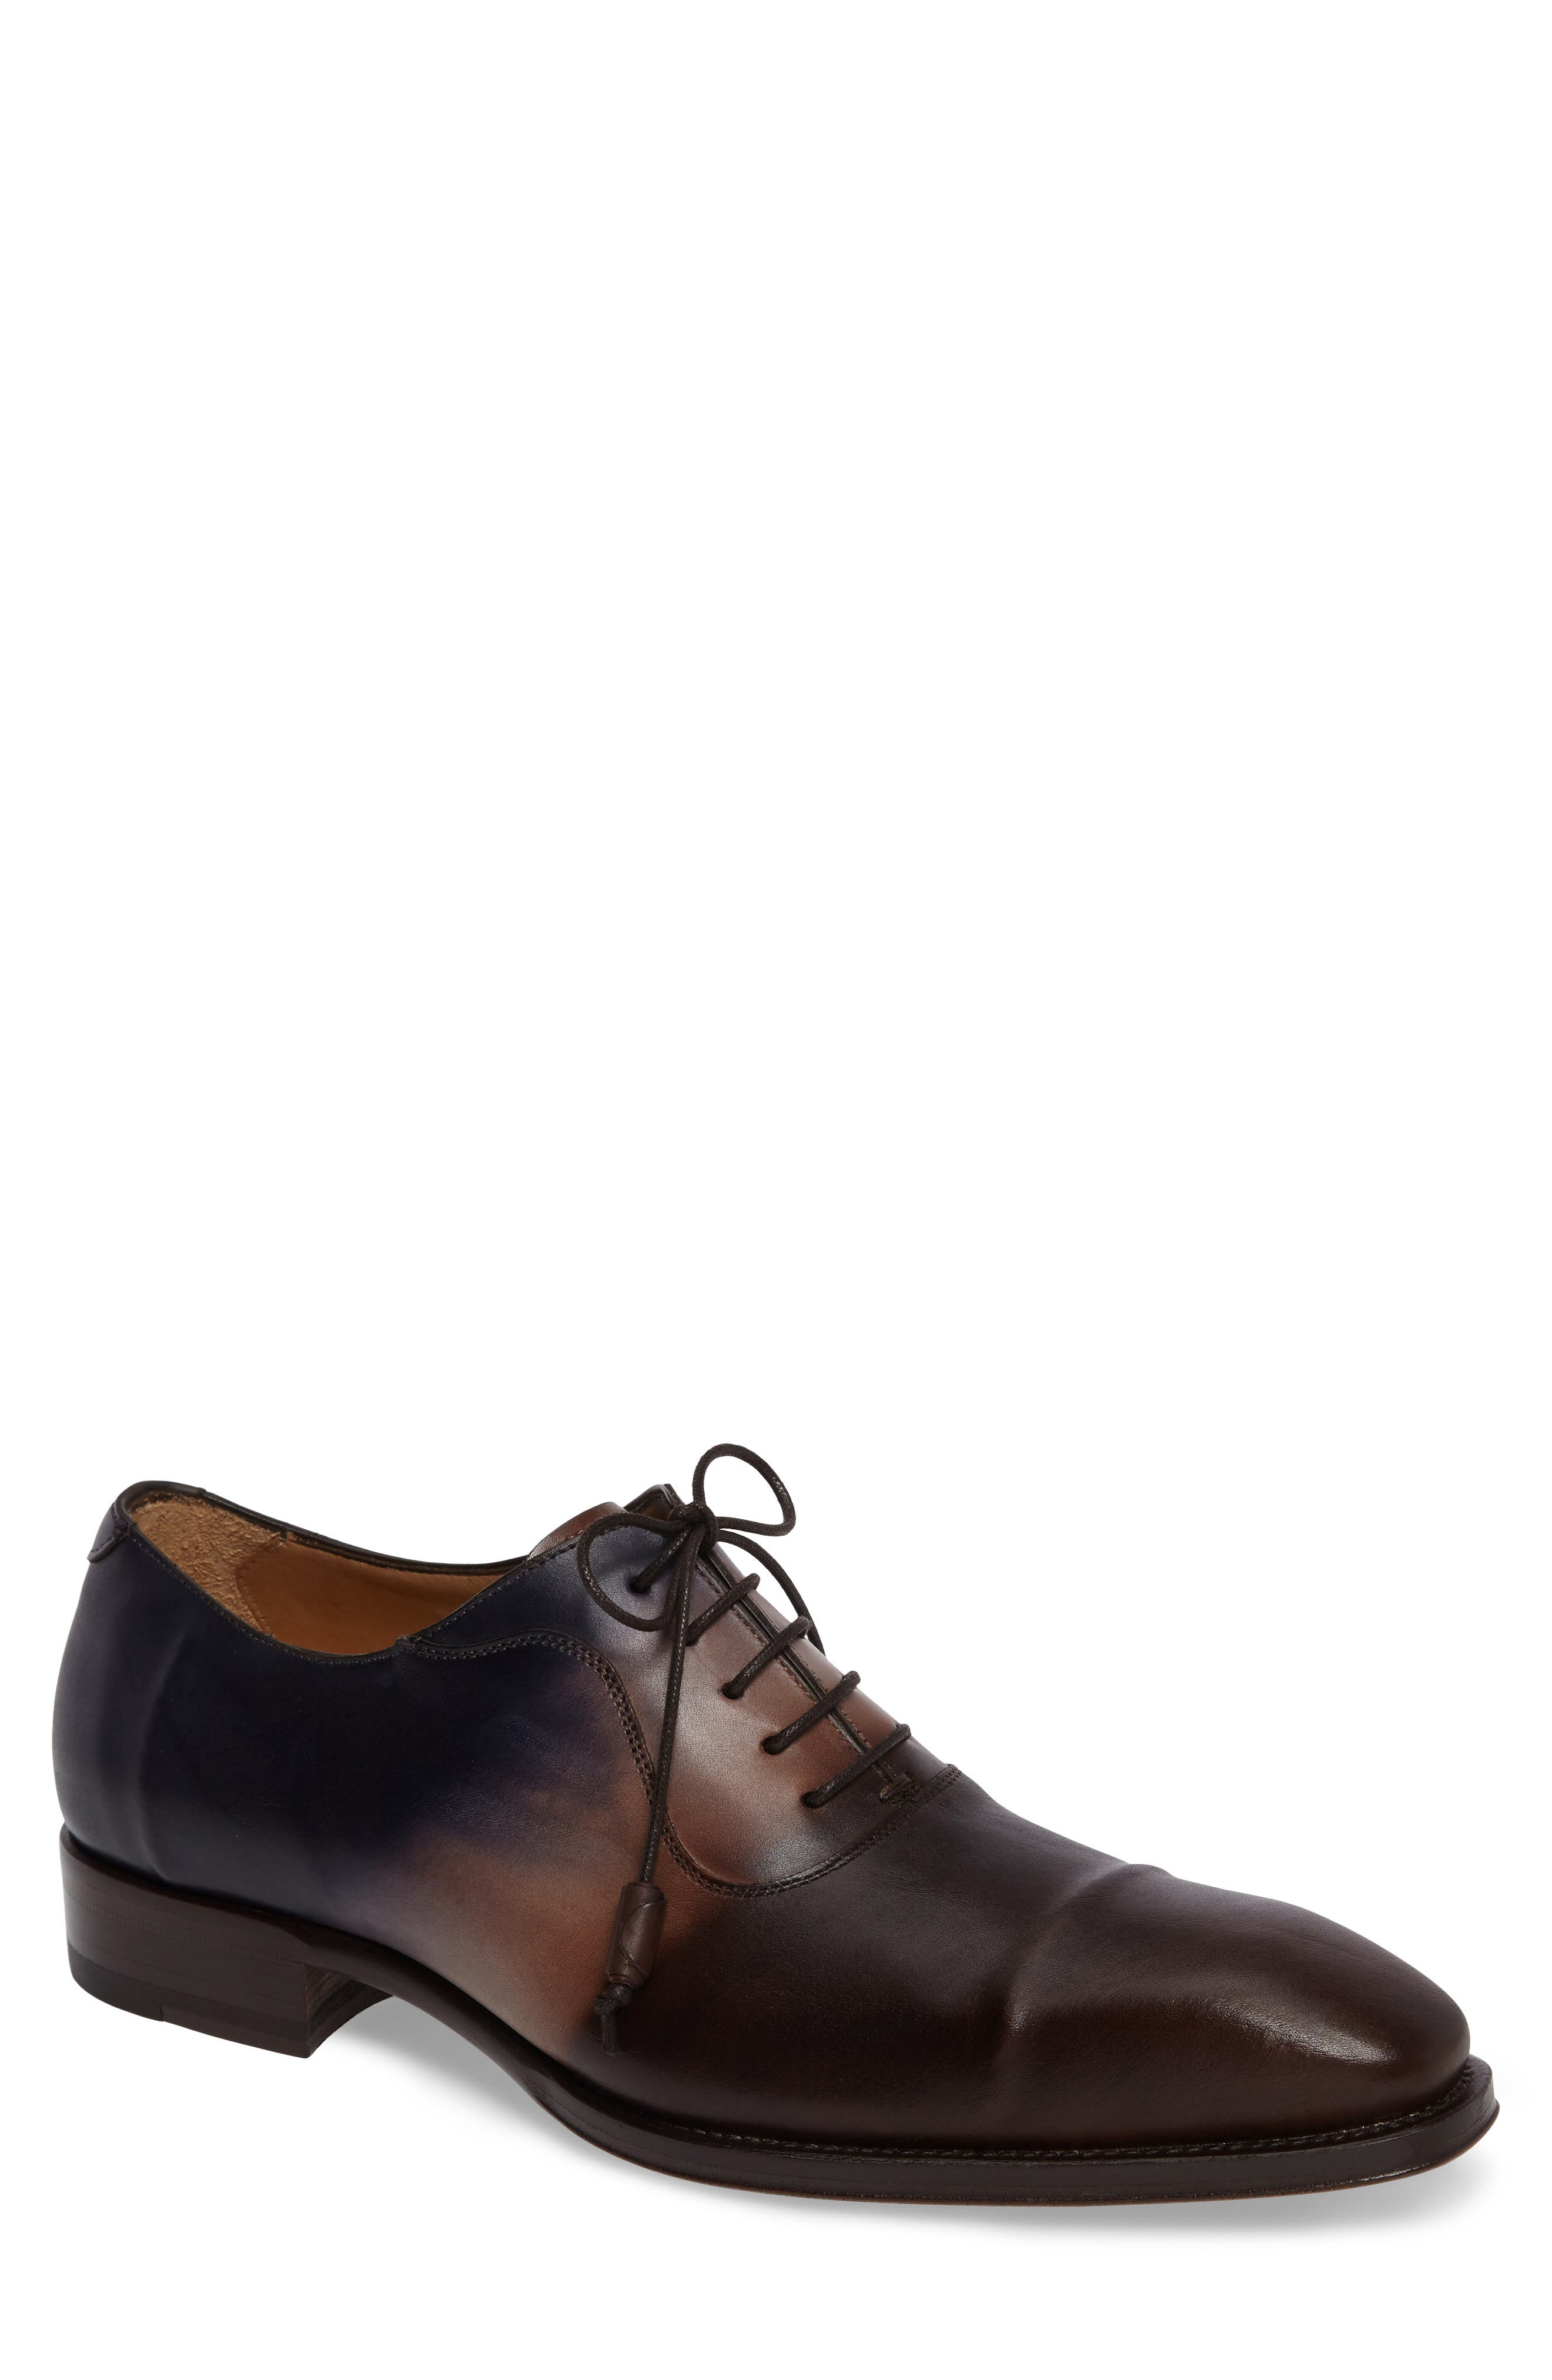 Millet Cap Toe Oxford,                         Main,                         color, Brown Multi Leather